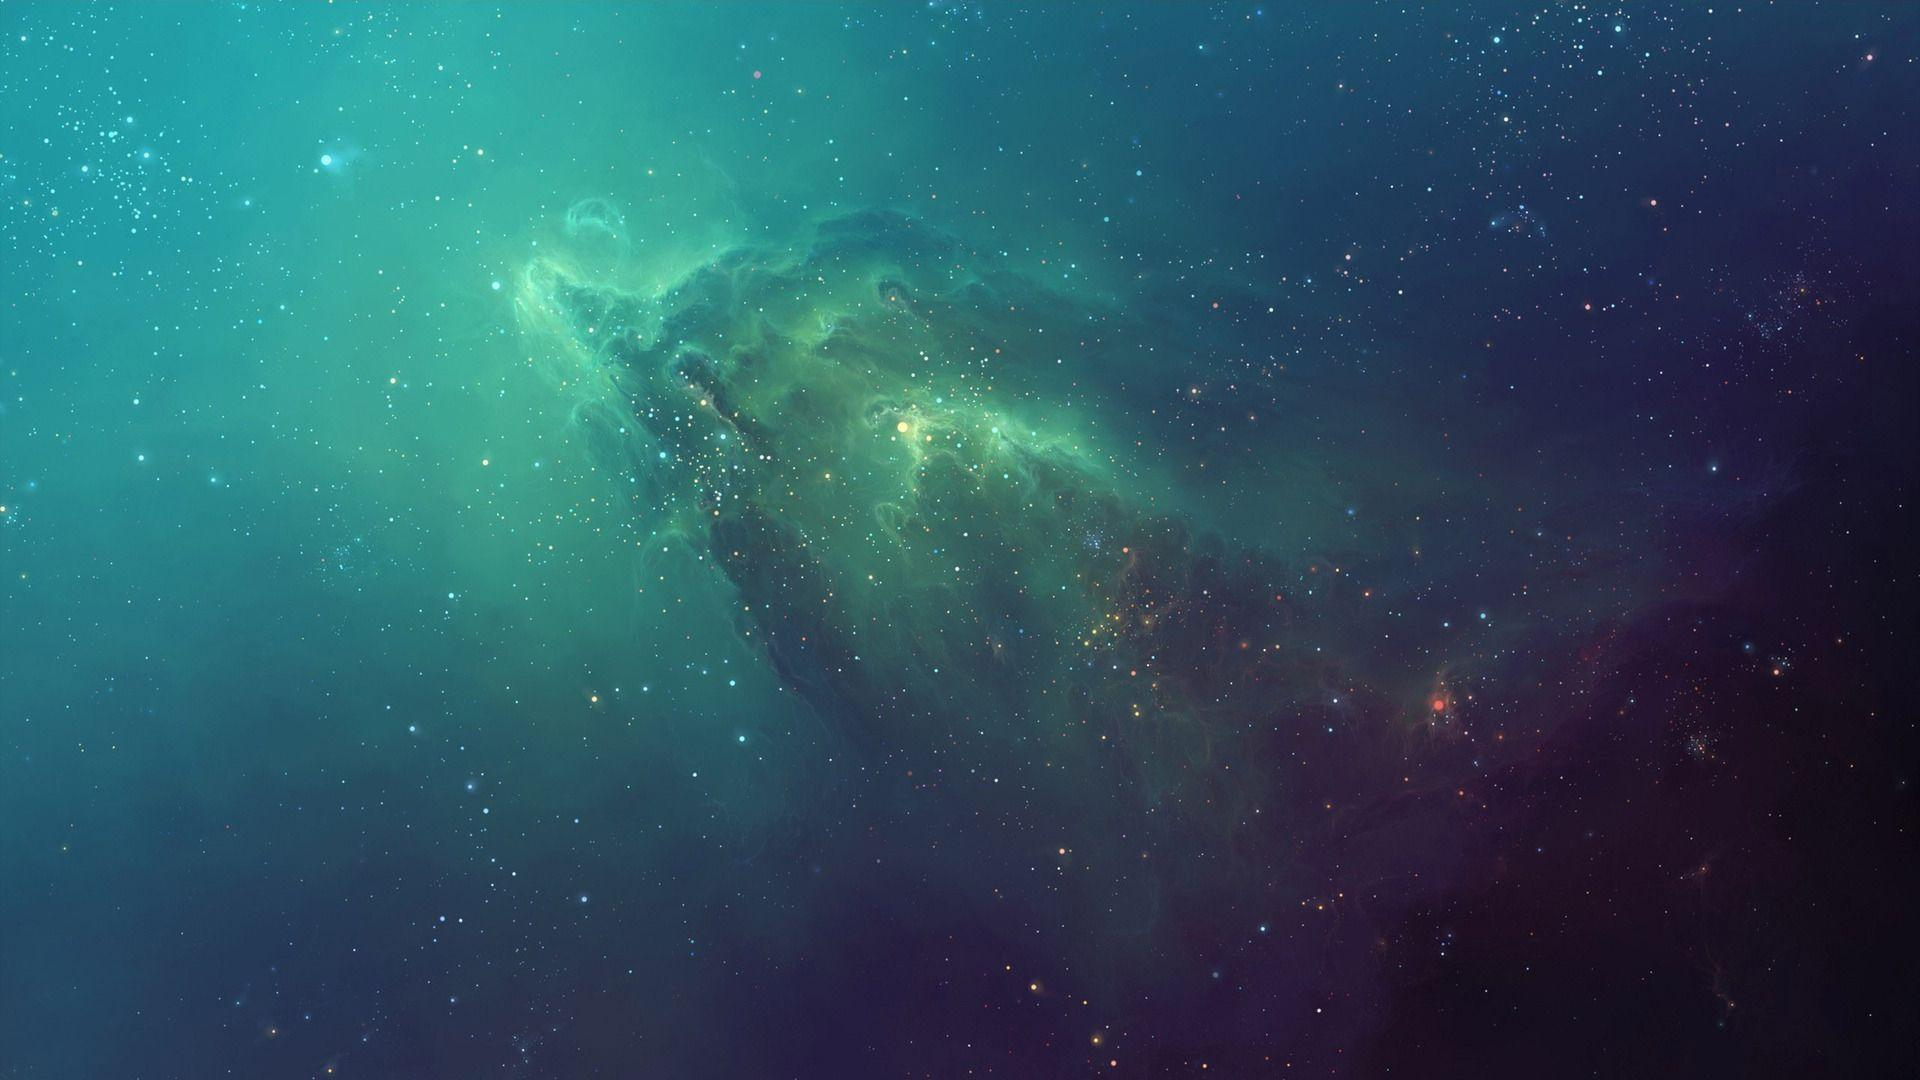 teal space nebula - photo #21